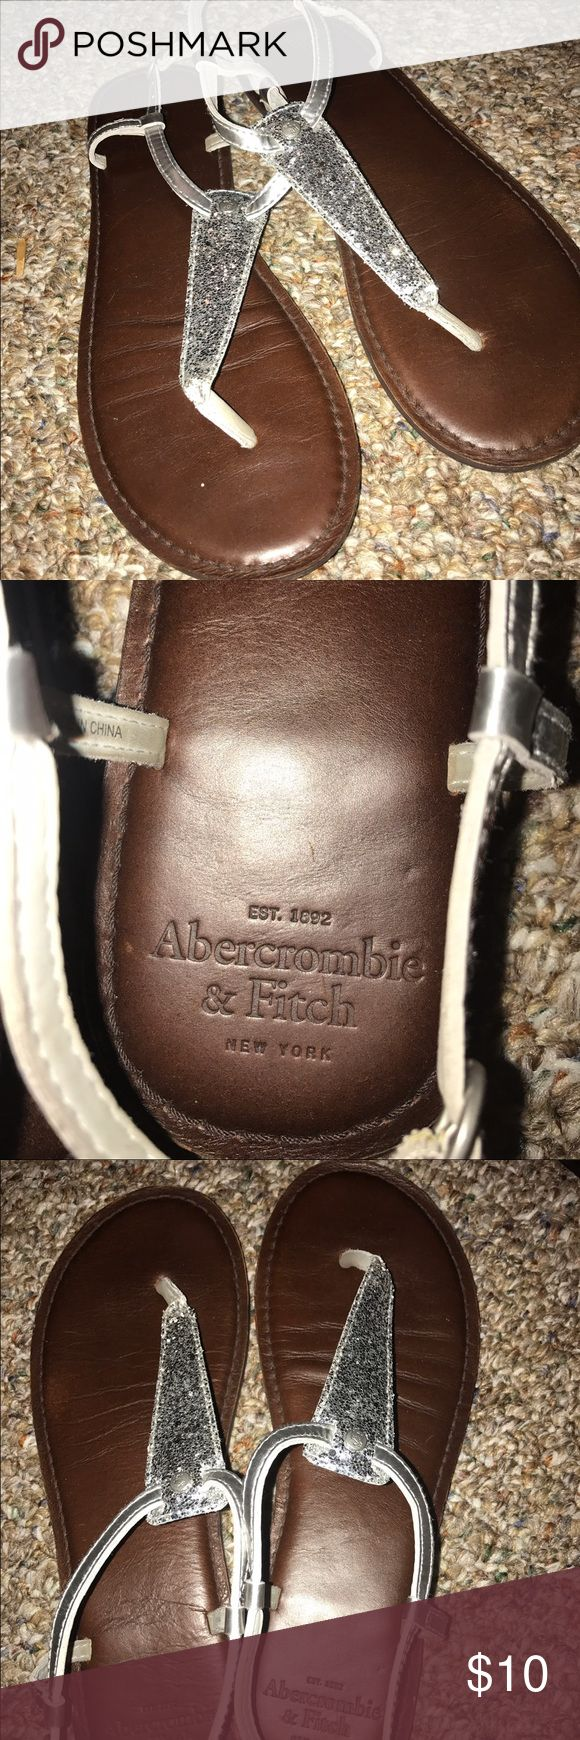 Abercrombie and Fitch sandals Cute, I never wear them anymore! Comfy Abercrombie & Fitch Shoes Sandals